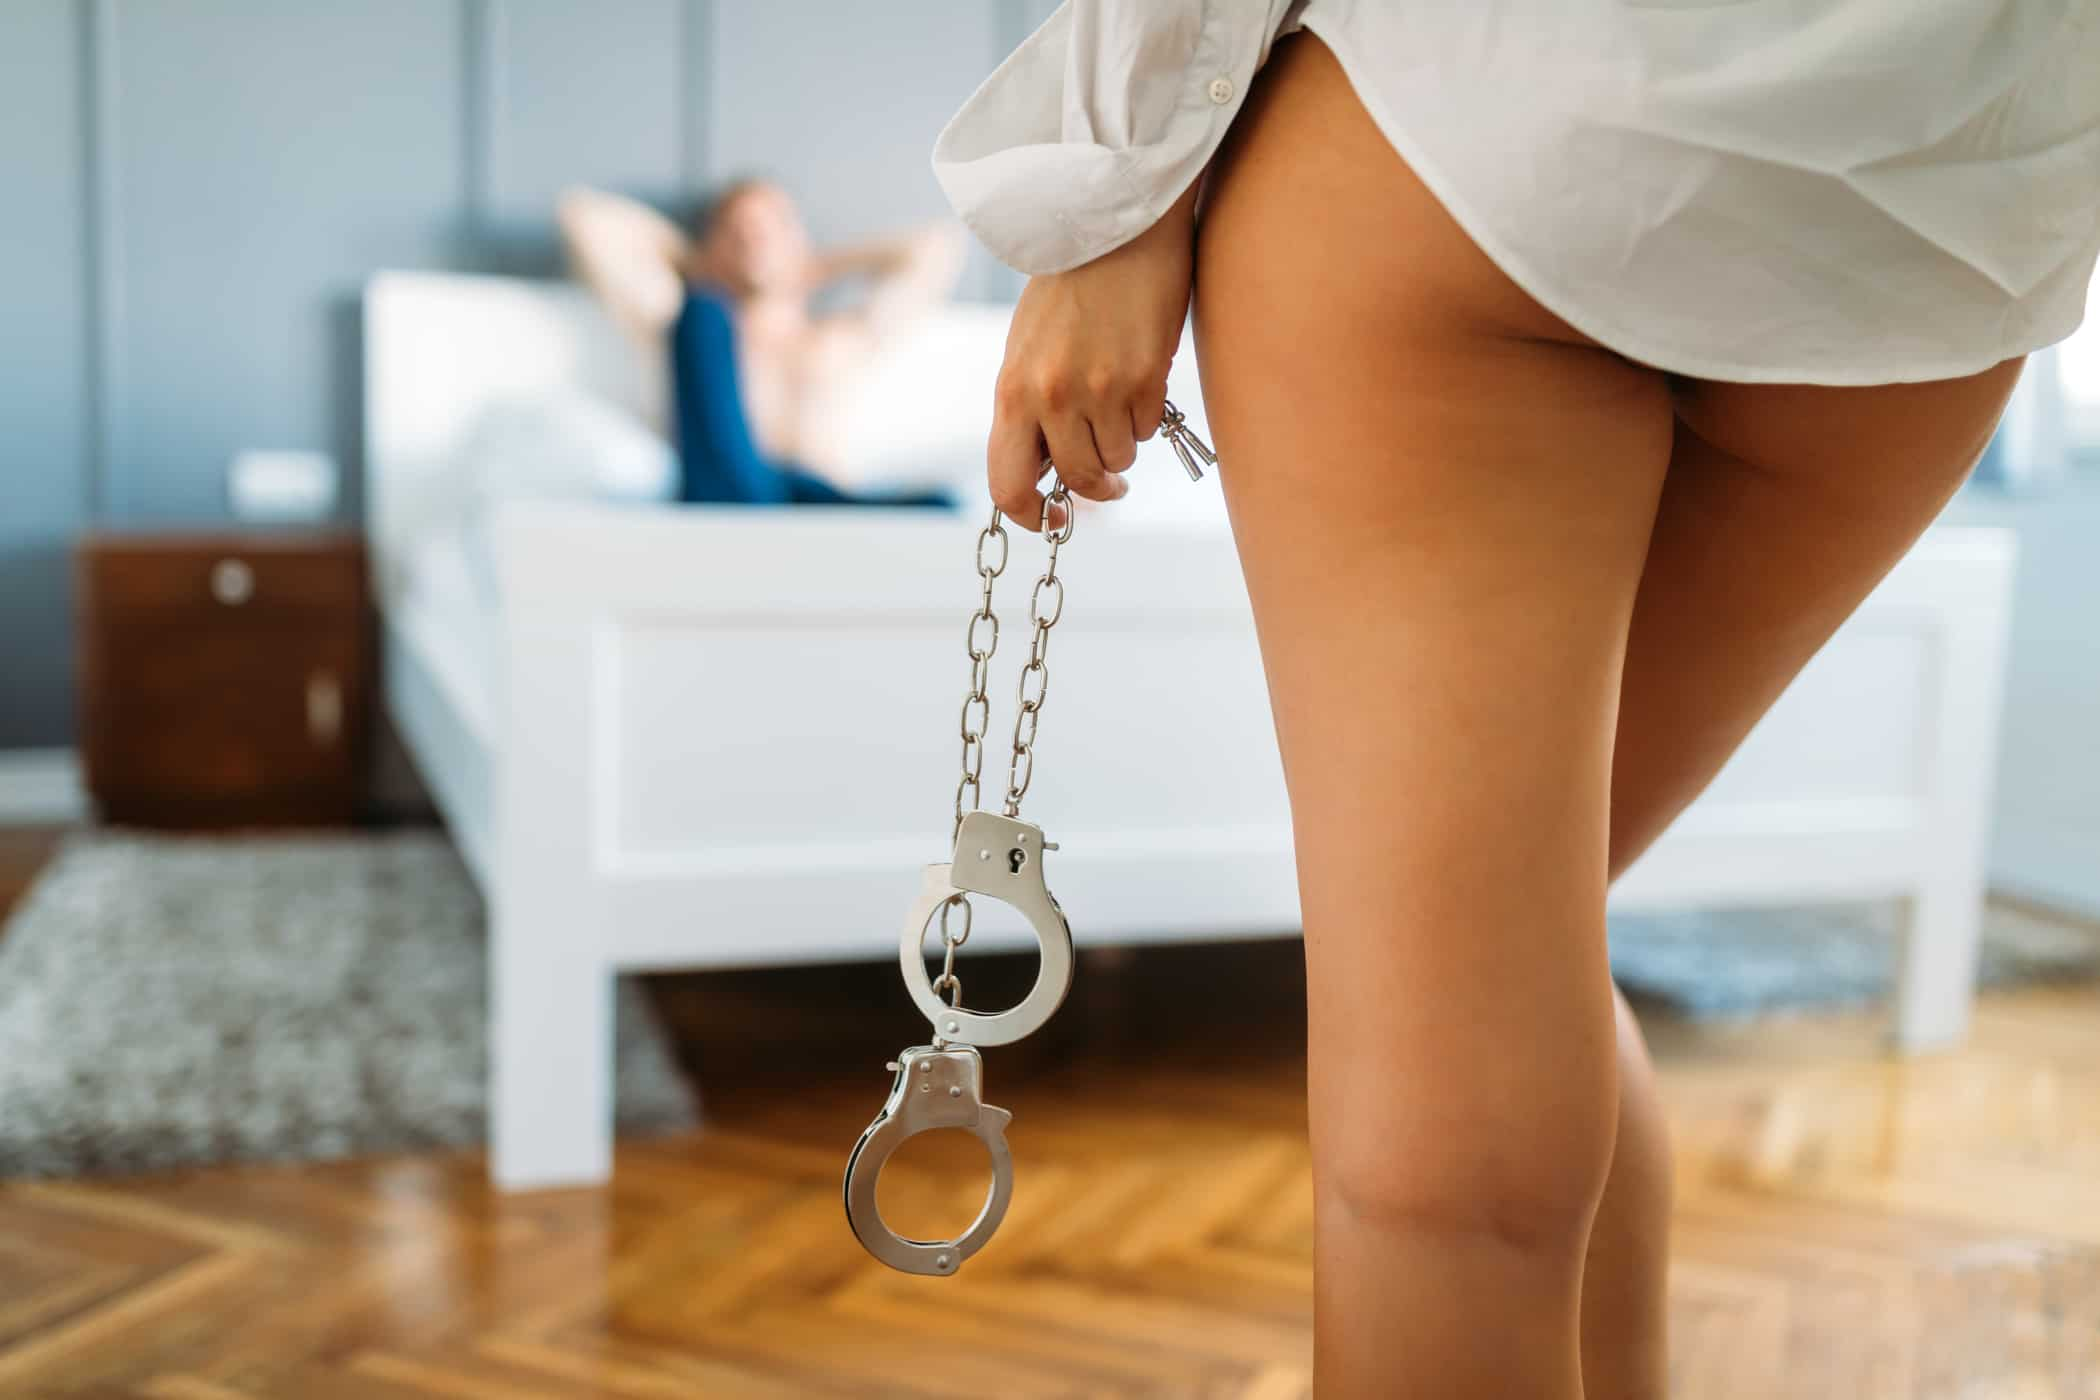 Science says being tied up can make you live longer